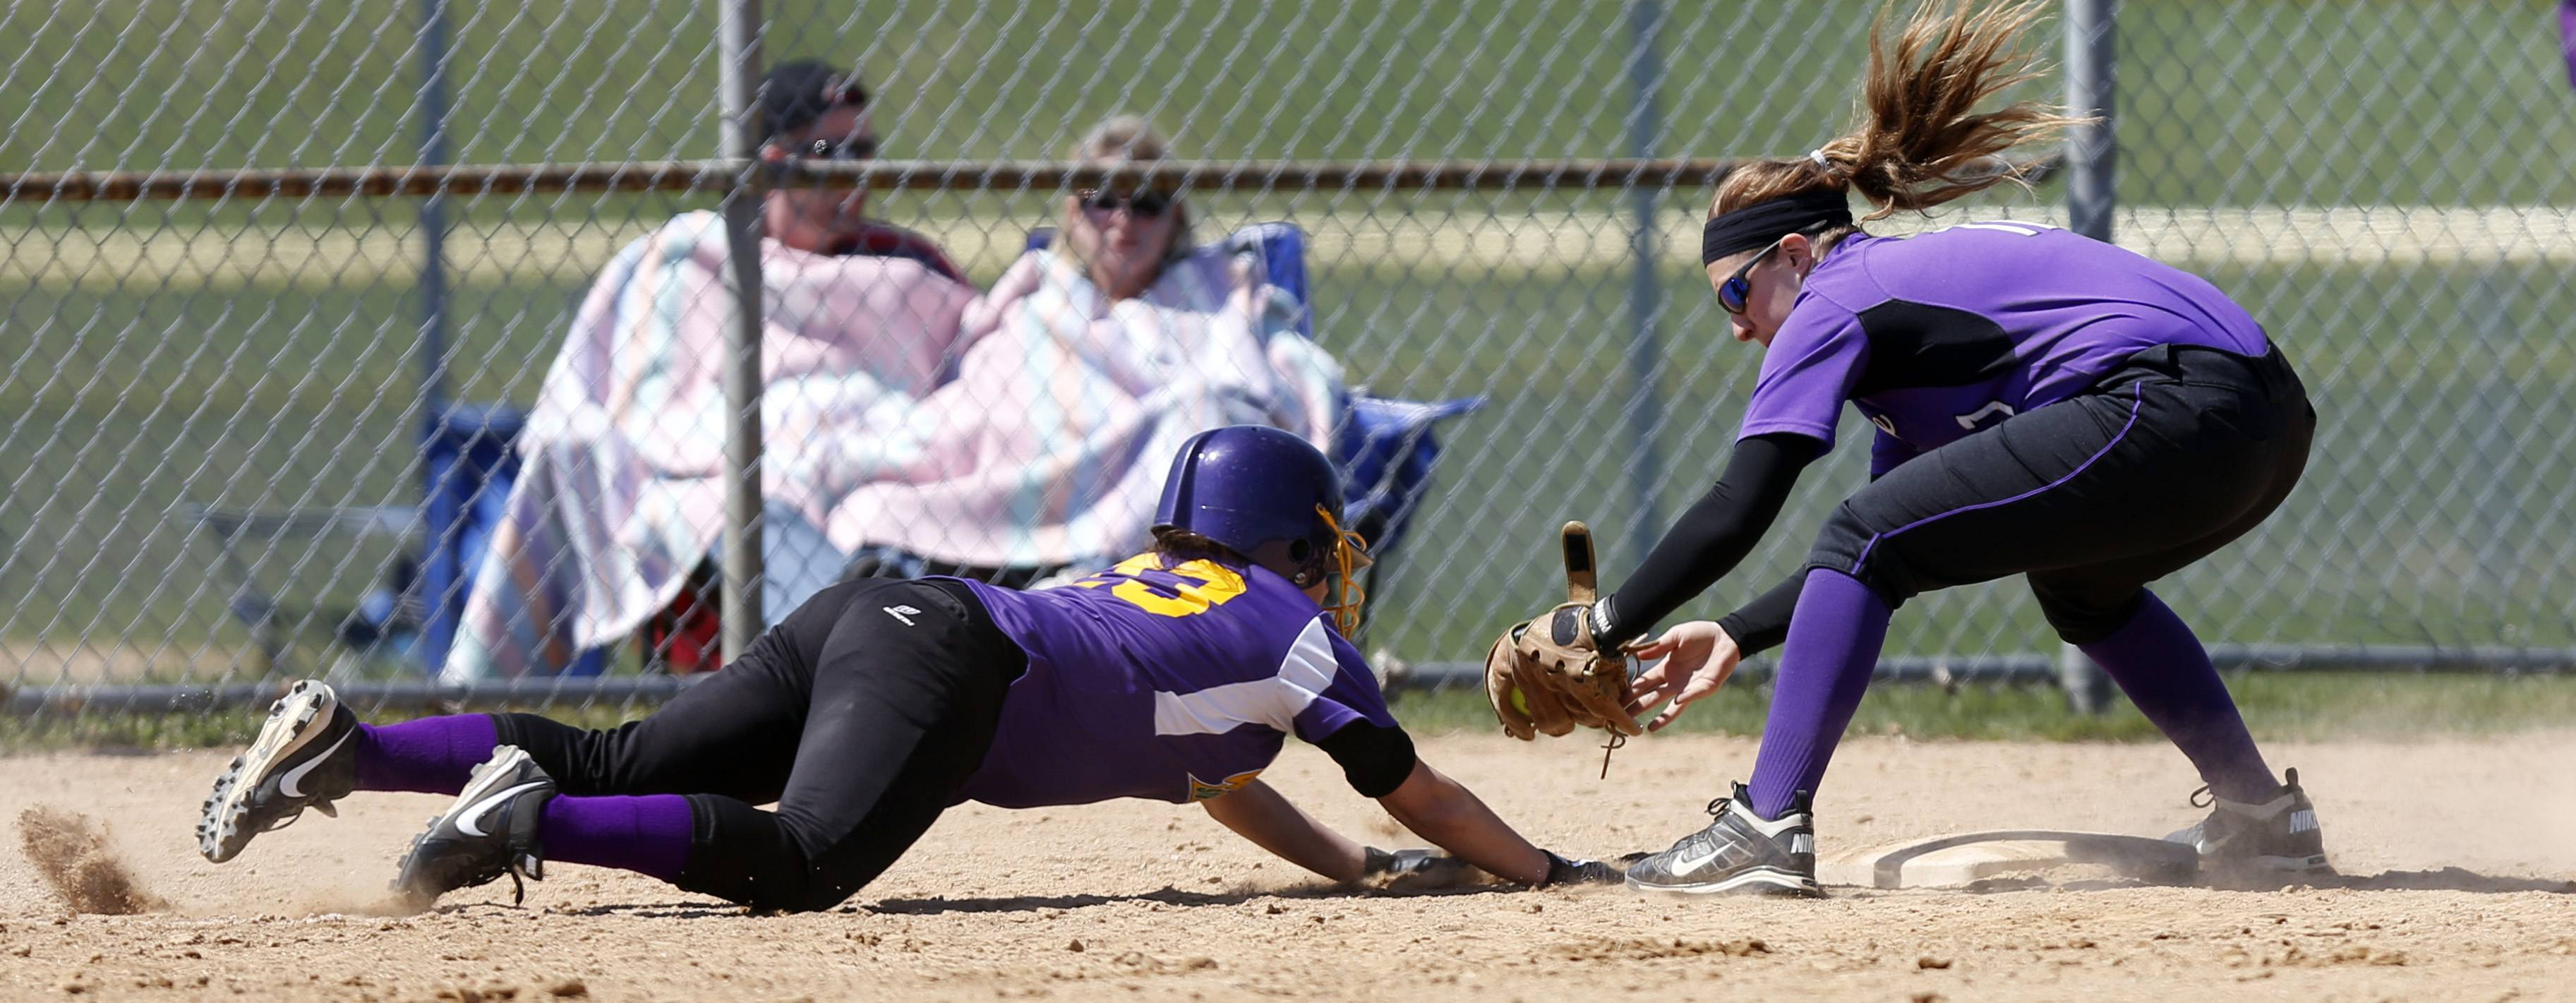 Hampshire's Ellie Lapi lays the tag and the out down on Waukegan's Coraima Garza during the Larkin Slugfest softball tournament Saturday at the Elgin Sports Complex in Elgin.